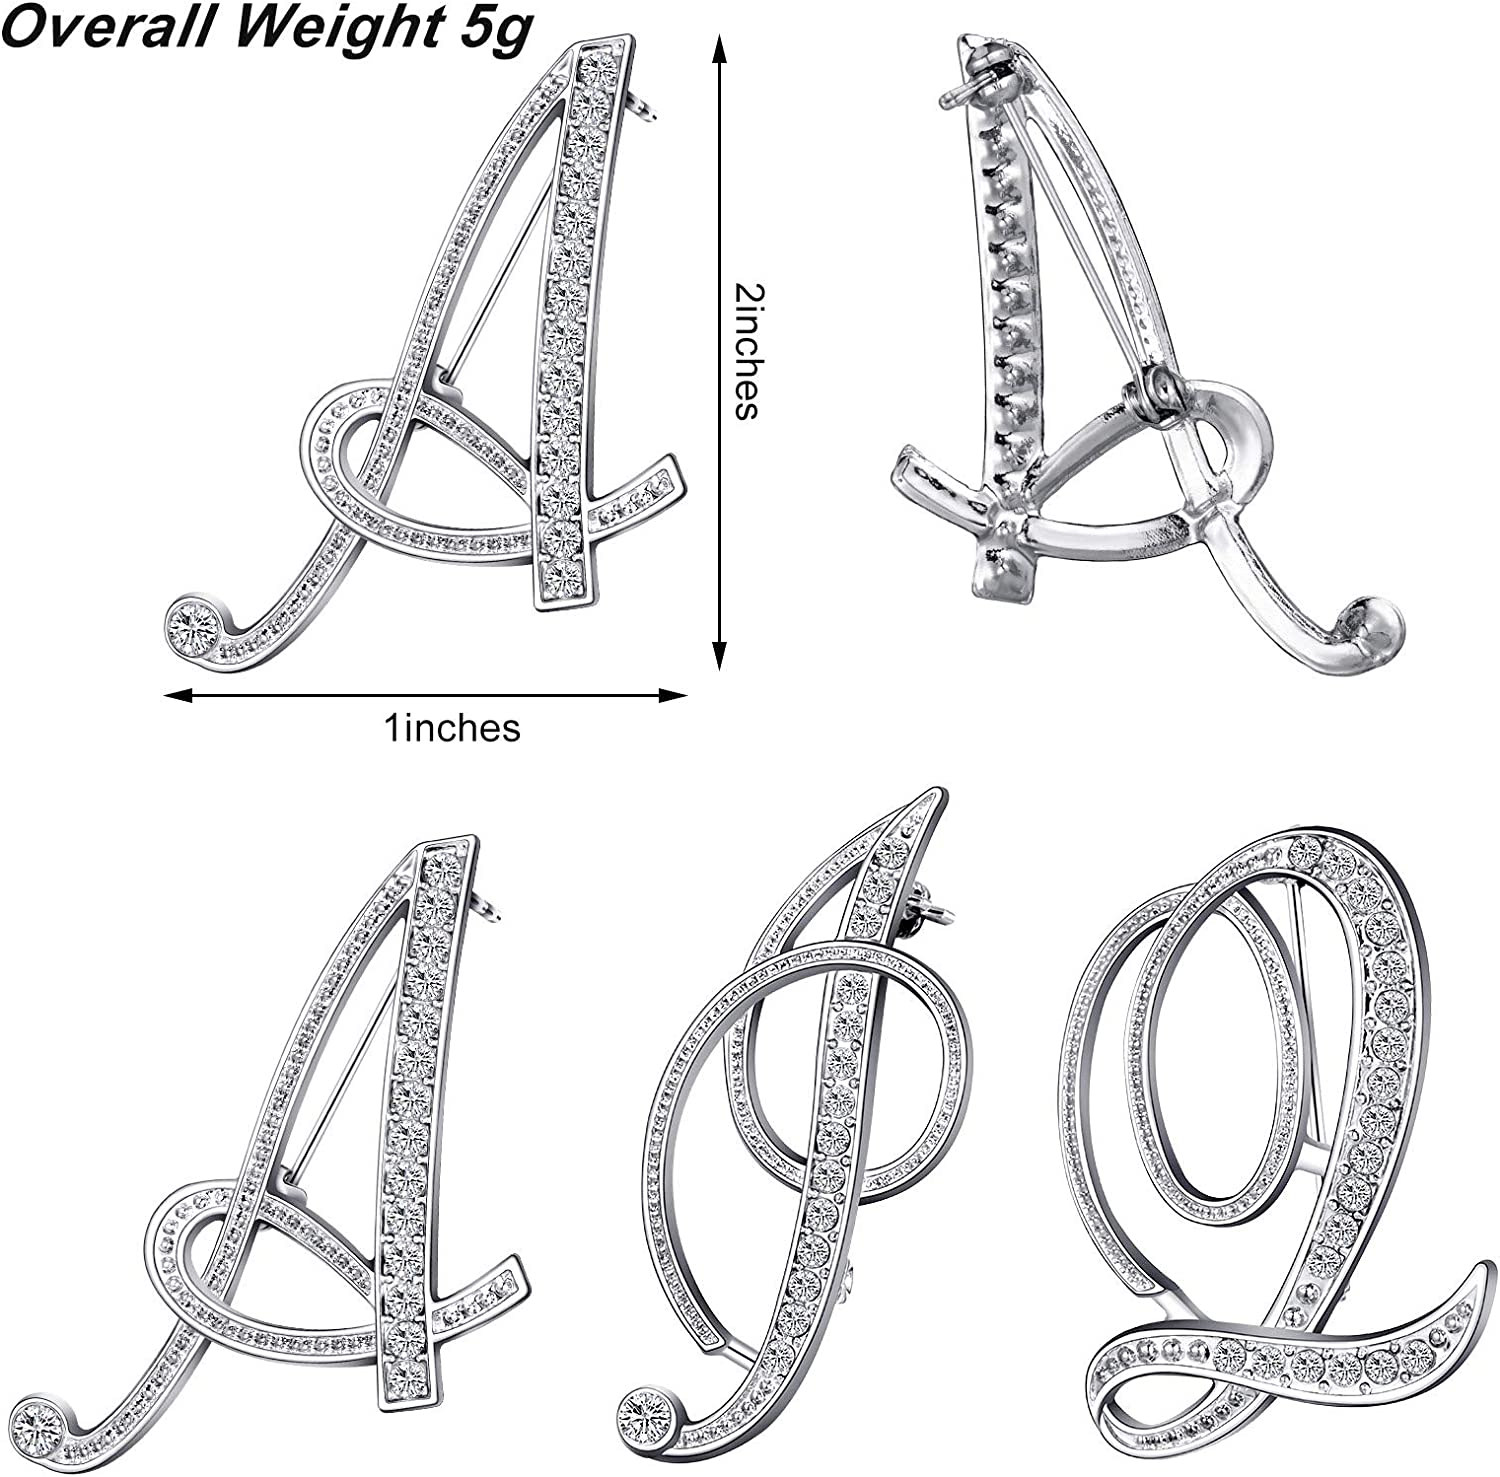 Hicarer 3 Pieces Women Initial Letters Brooch Pin A Q I Letter Charms Rhinestone Brooch Pin Shiny Crystal Collar Badge Pin